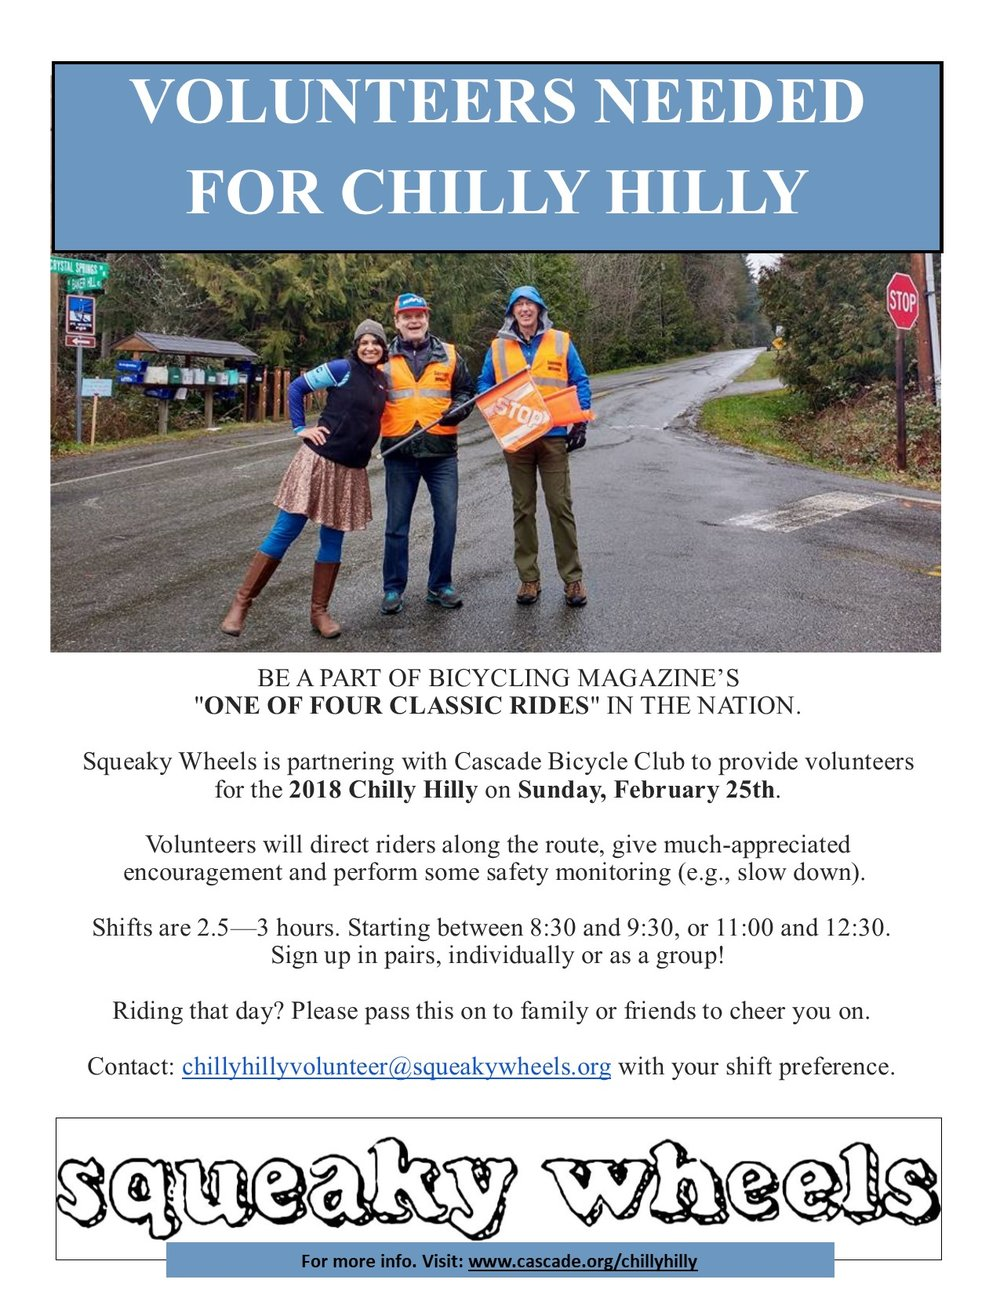 chilly hilly volunteer flyer.jpg